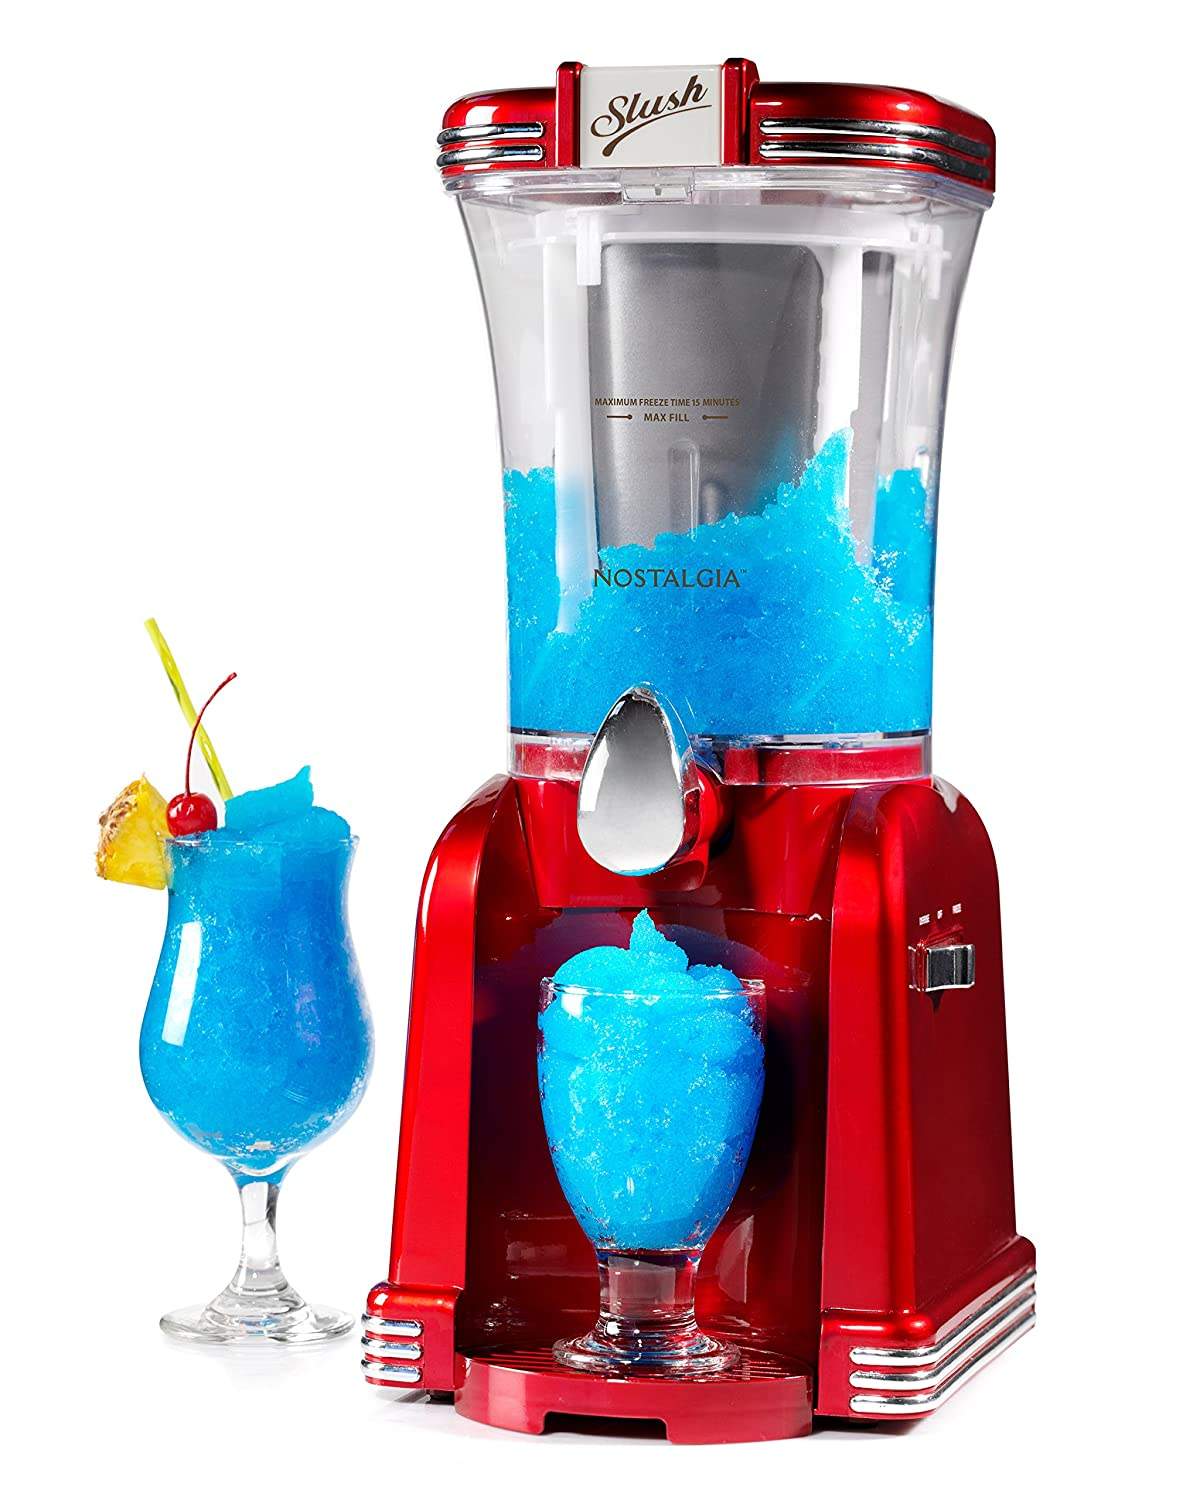 Nostalgia RSM650 Retro Series 32-Ounce Slush Drink Maker Emgee